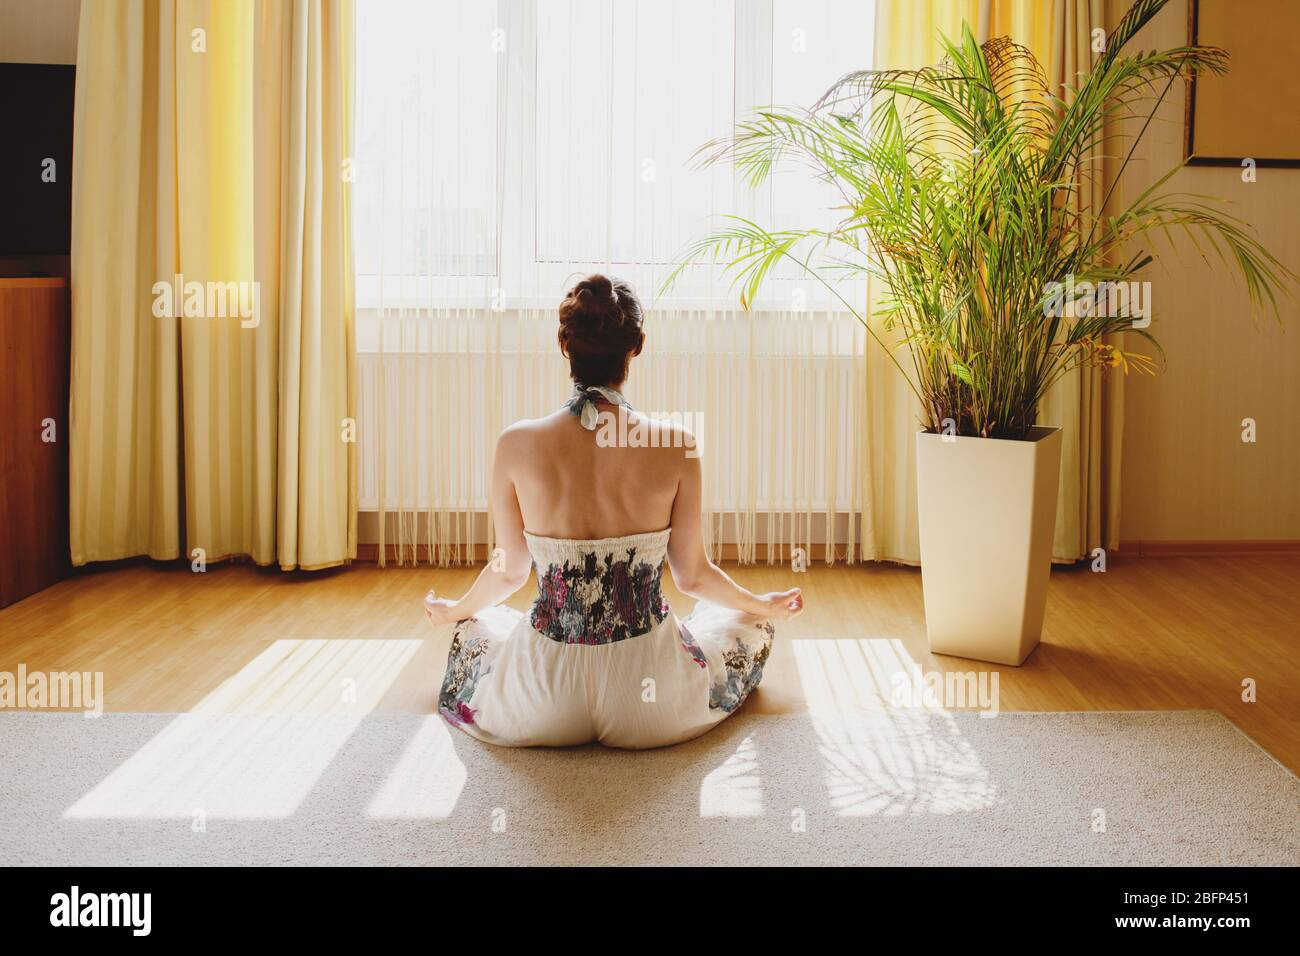 Back view of woman meditating on floor at home. Stock Photo